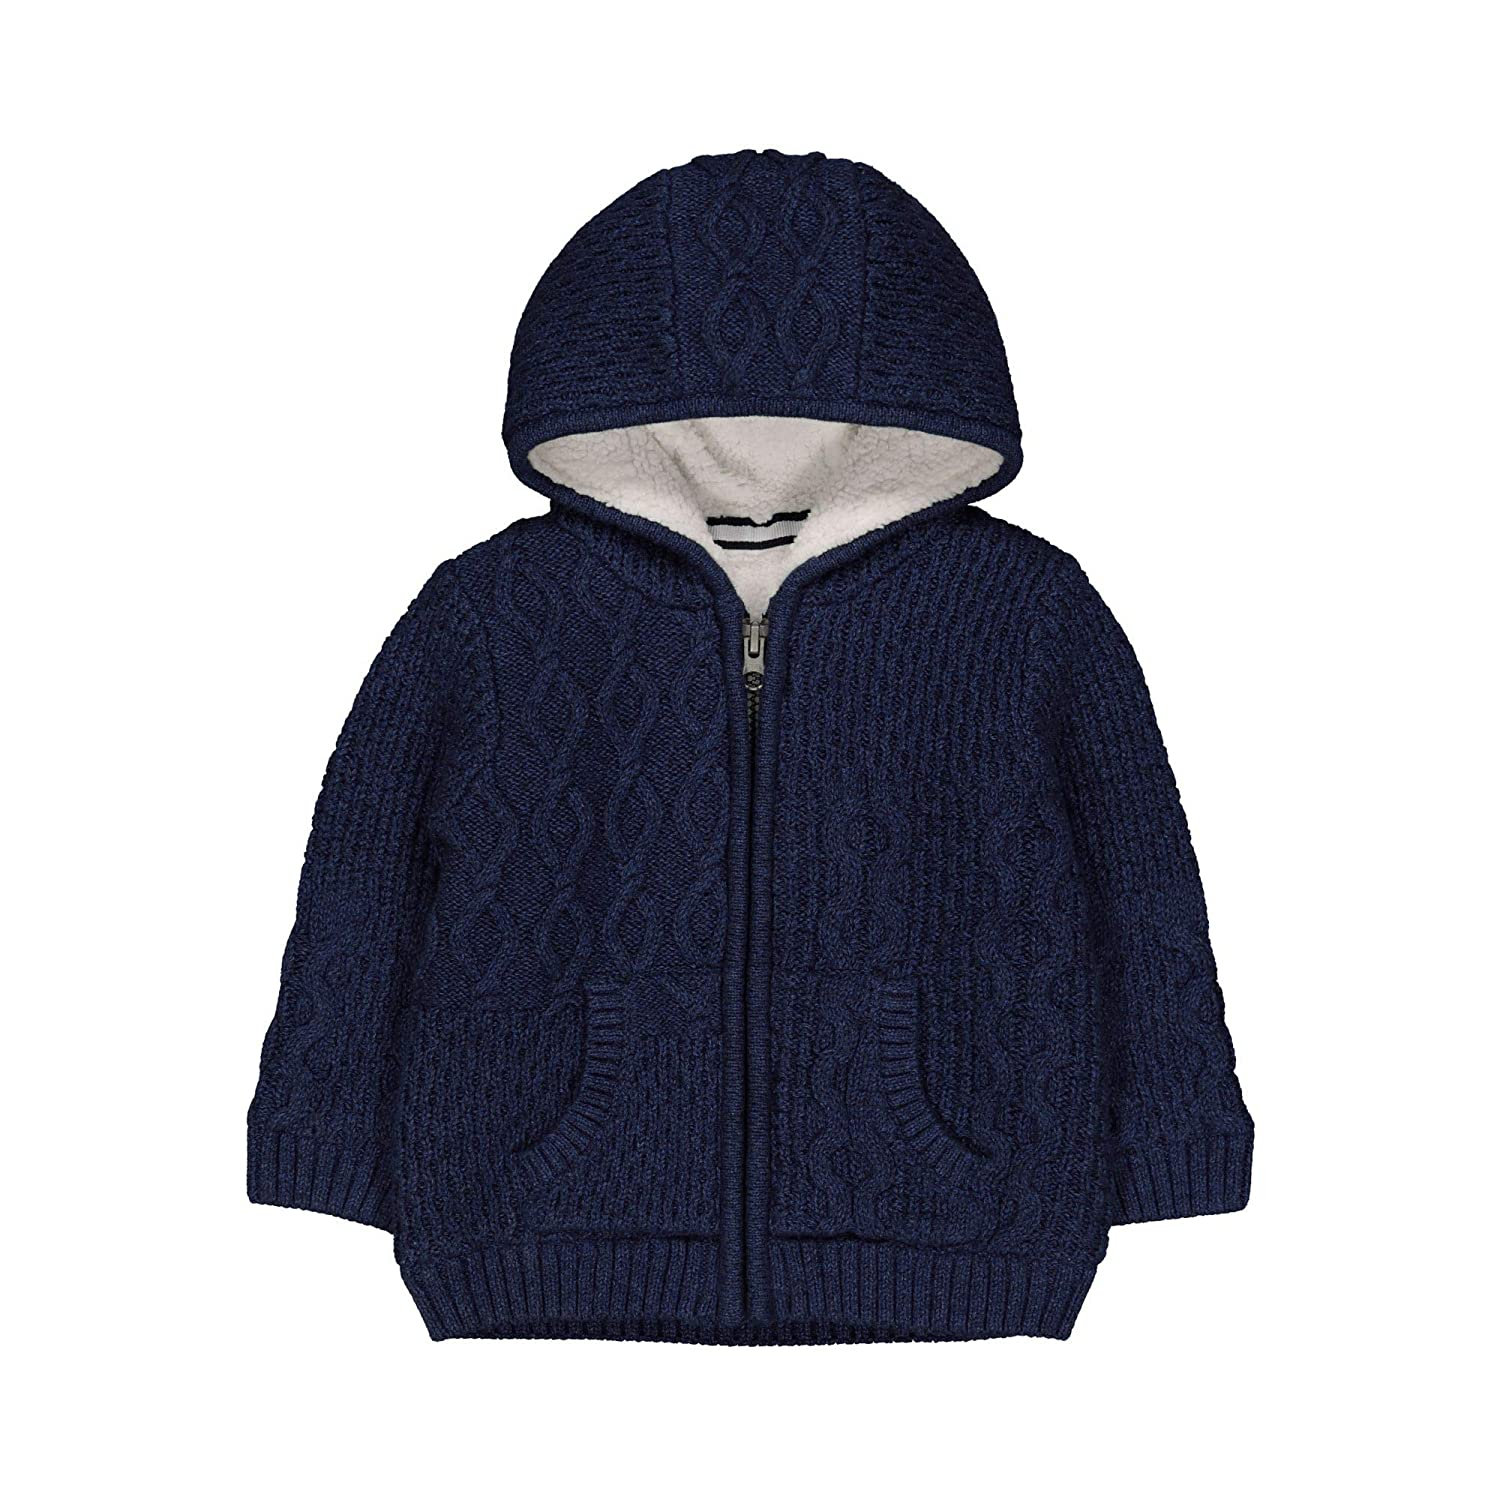 Mothercare Navy Knit Borg Long Cardi, Cardigan Bimbo QA187